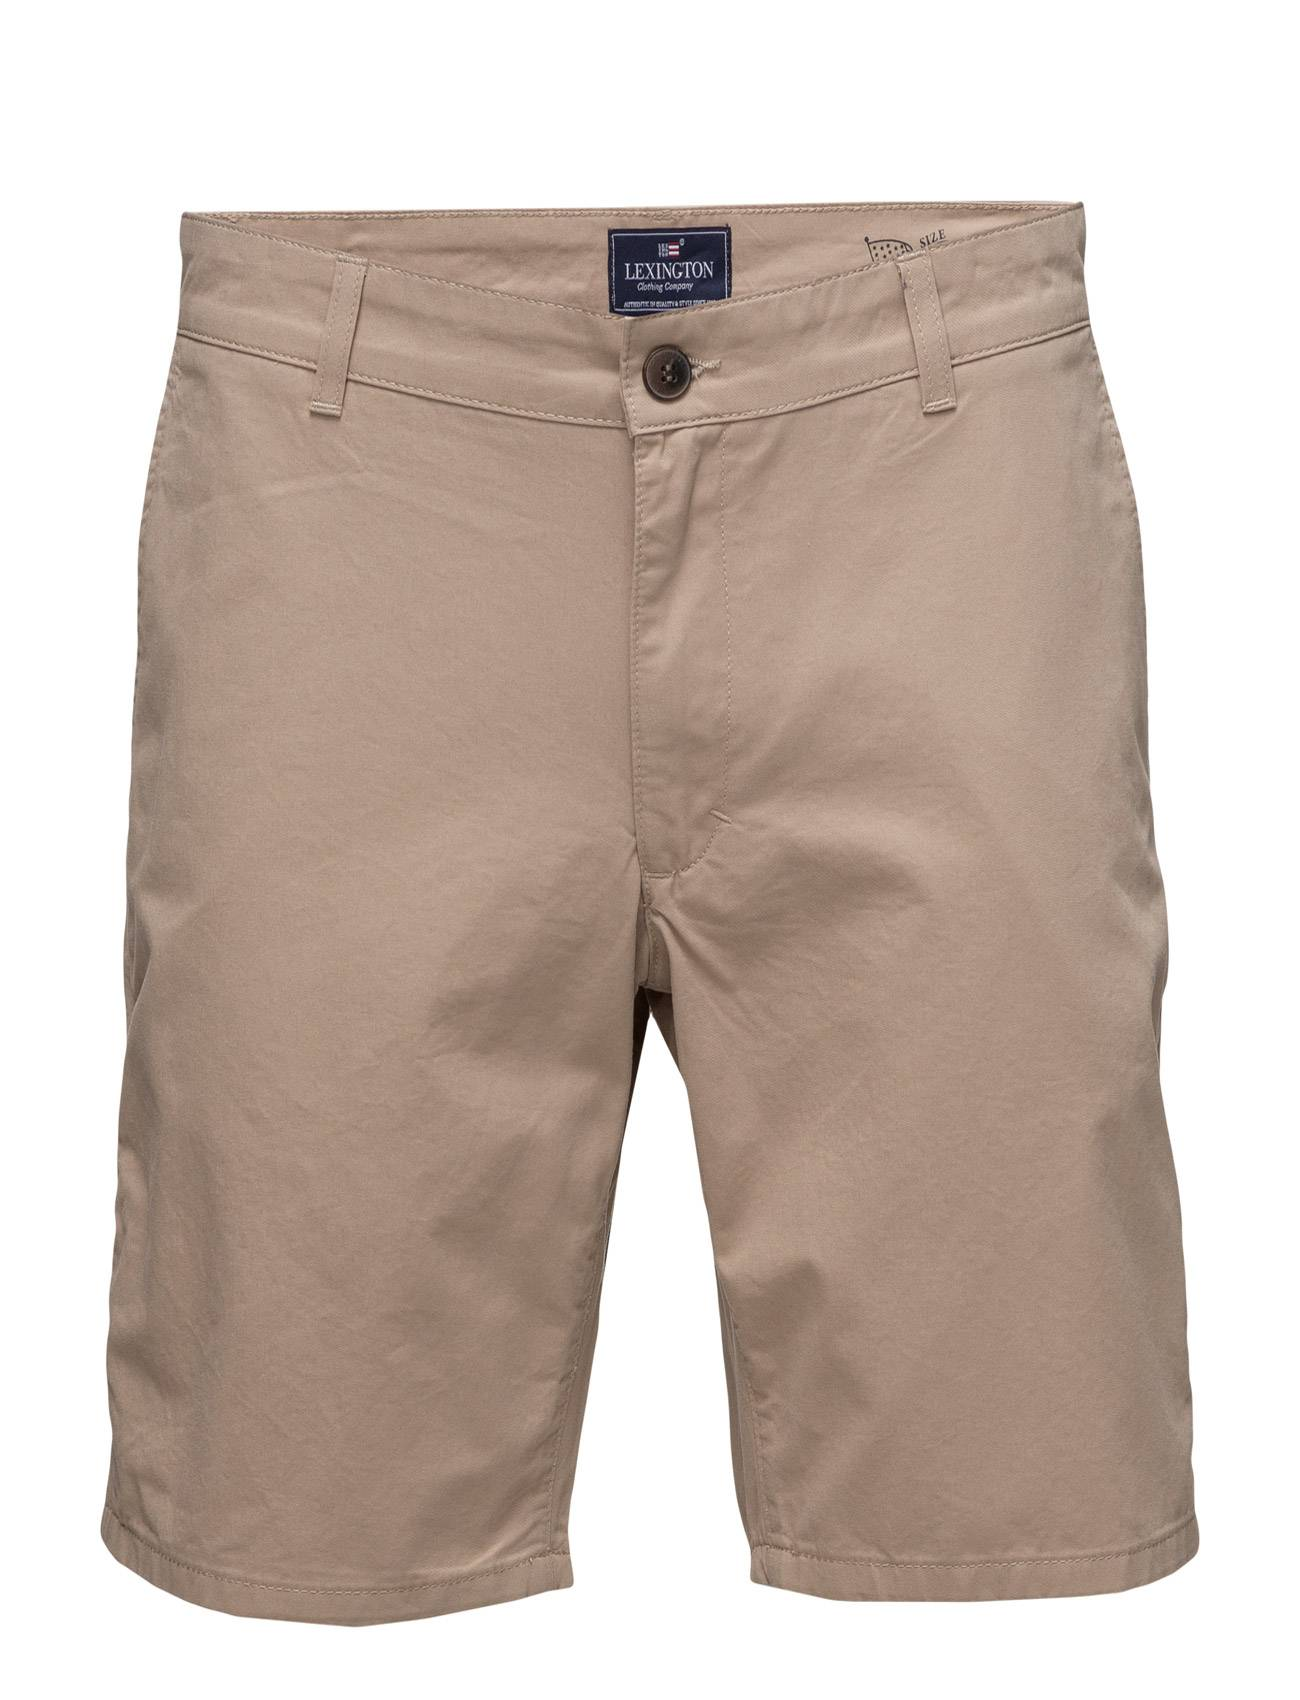 Lexington Company Gavin Chino Shorts